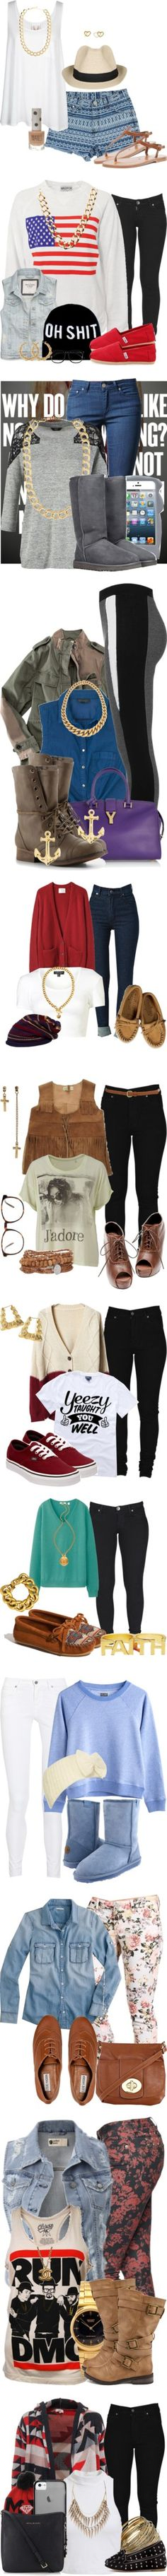 """Girly Too Girly Part 1"" by mrkr-lawson ❤ liked on Polyvore"